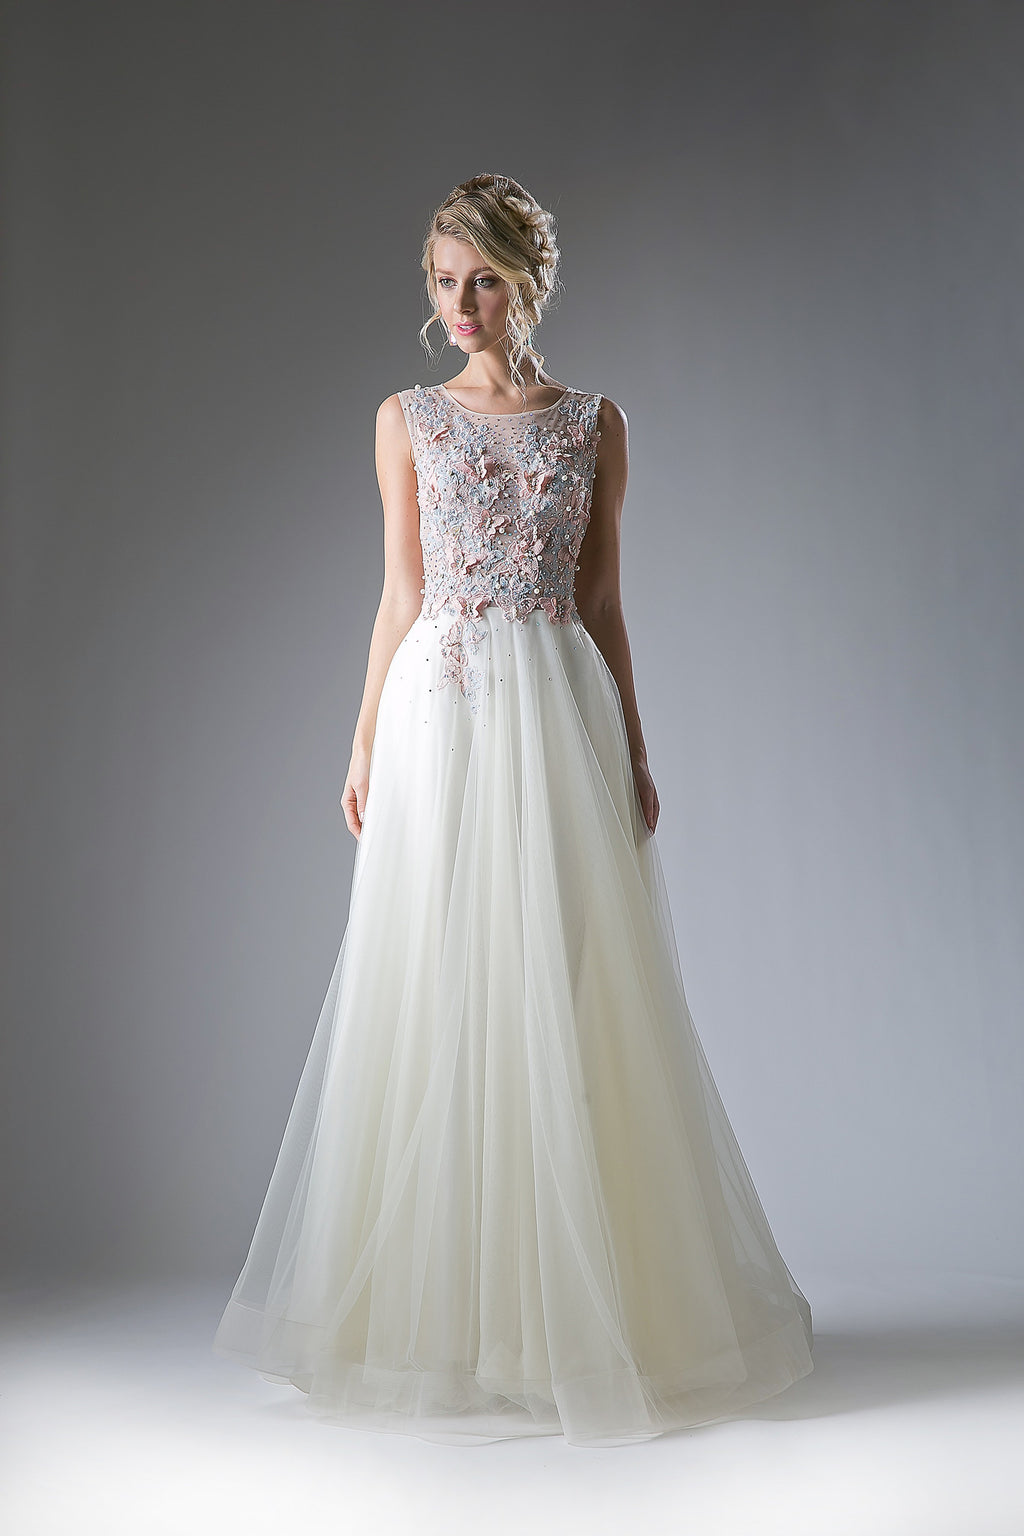 Floral Lace & Faux Pearl Embroidered Flowing Gown Style #CA1652